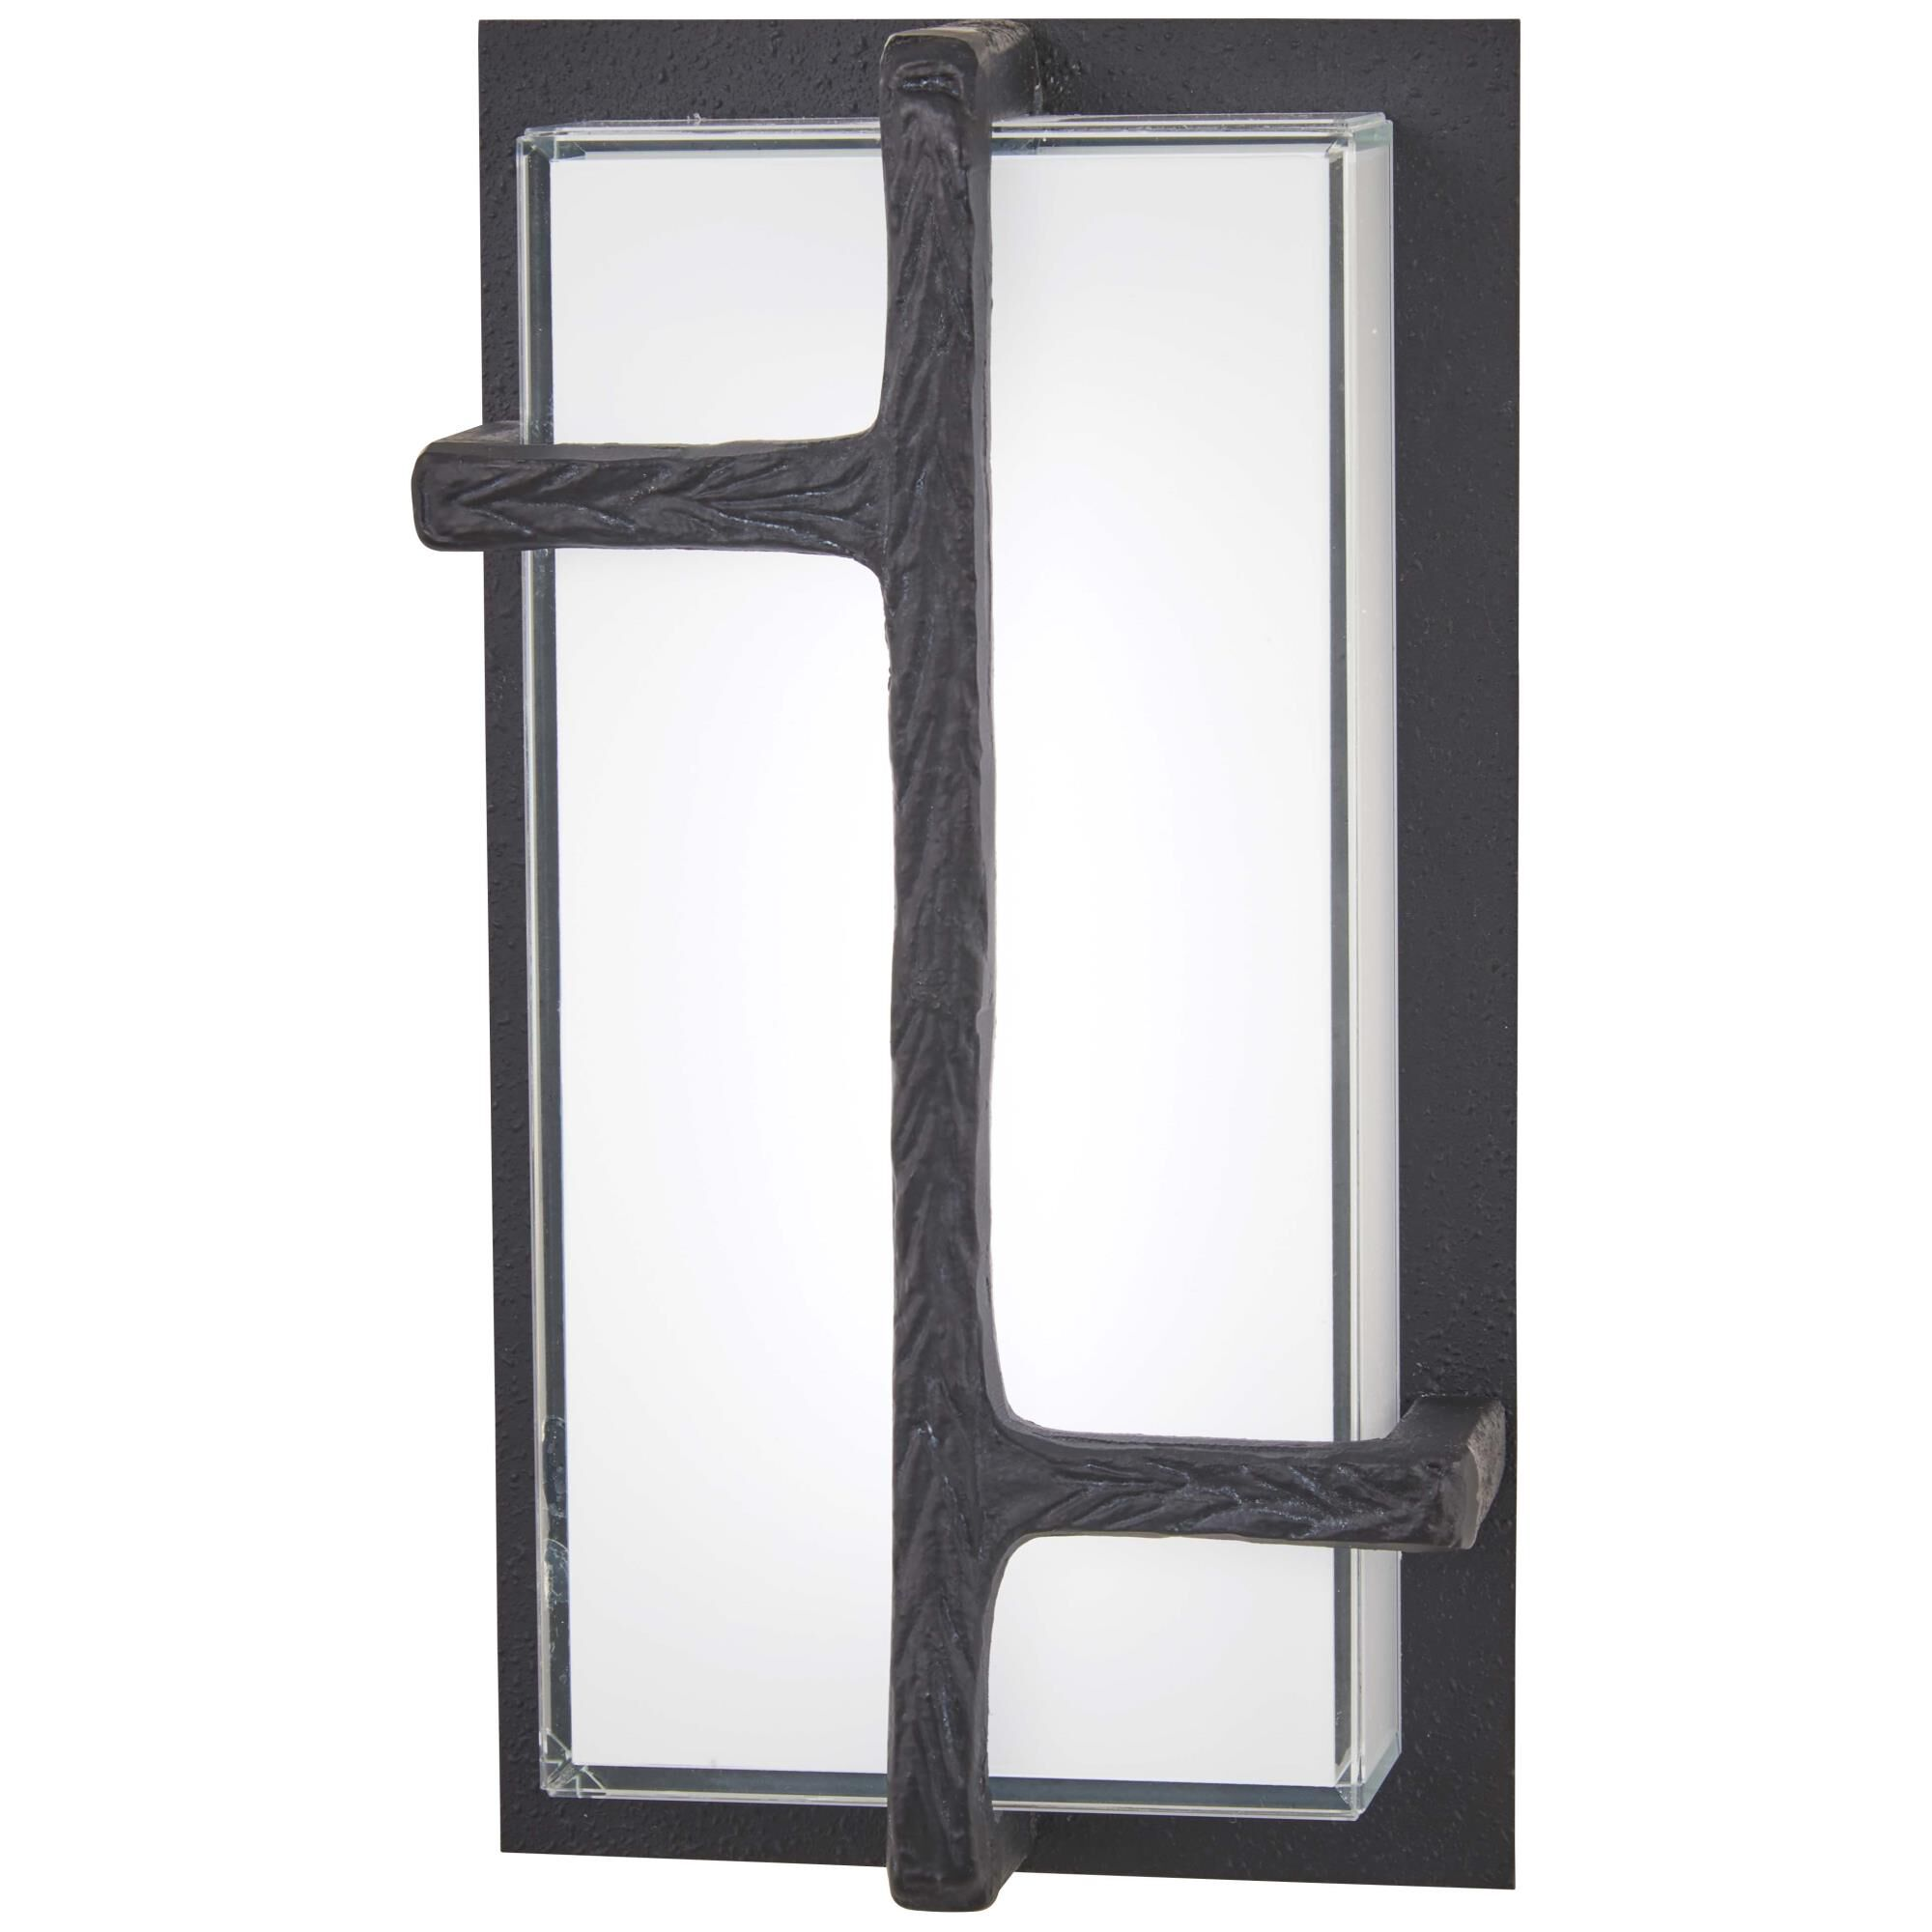 Kovacs Sirato 16 Inch Led Wall Sconce Sirato - P1340-039-l - Transitional